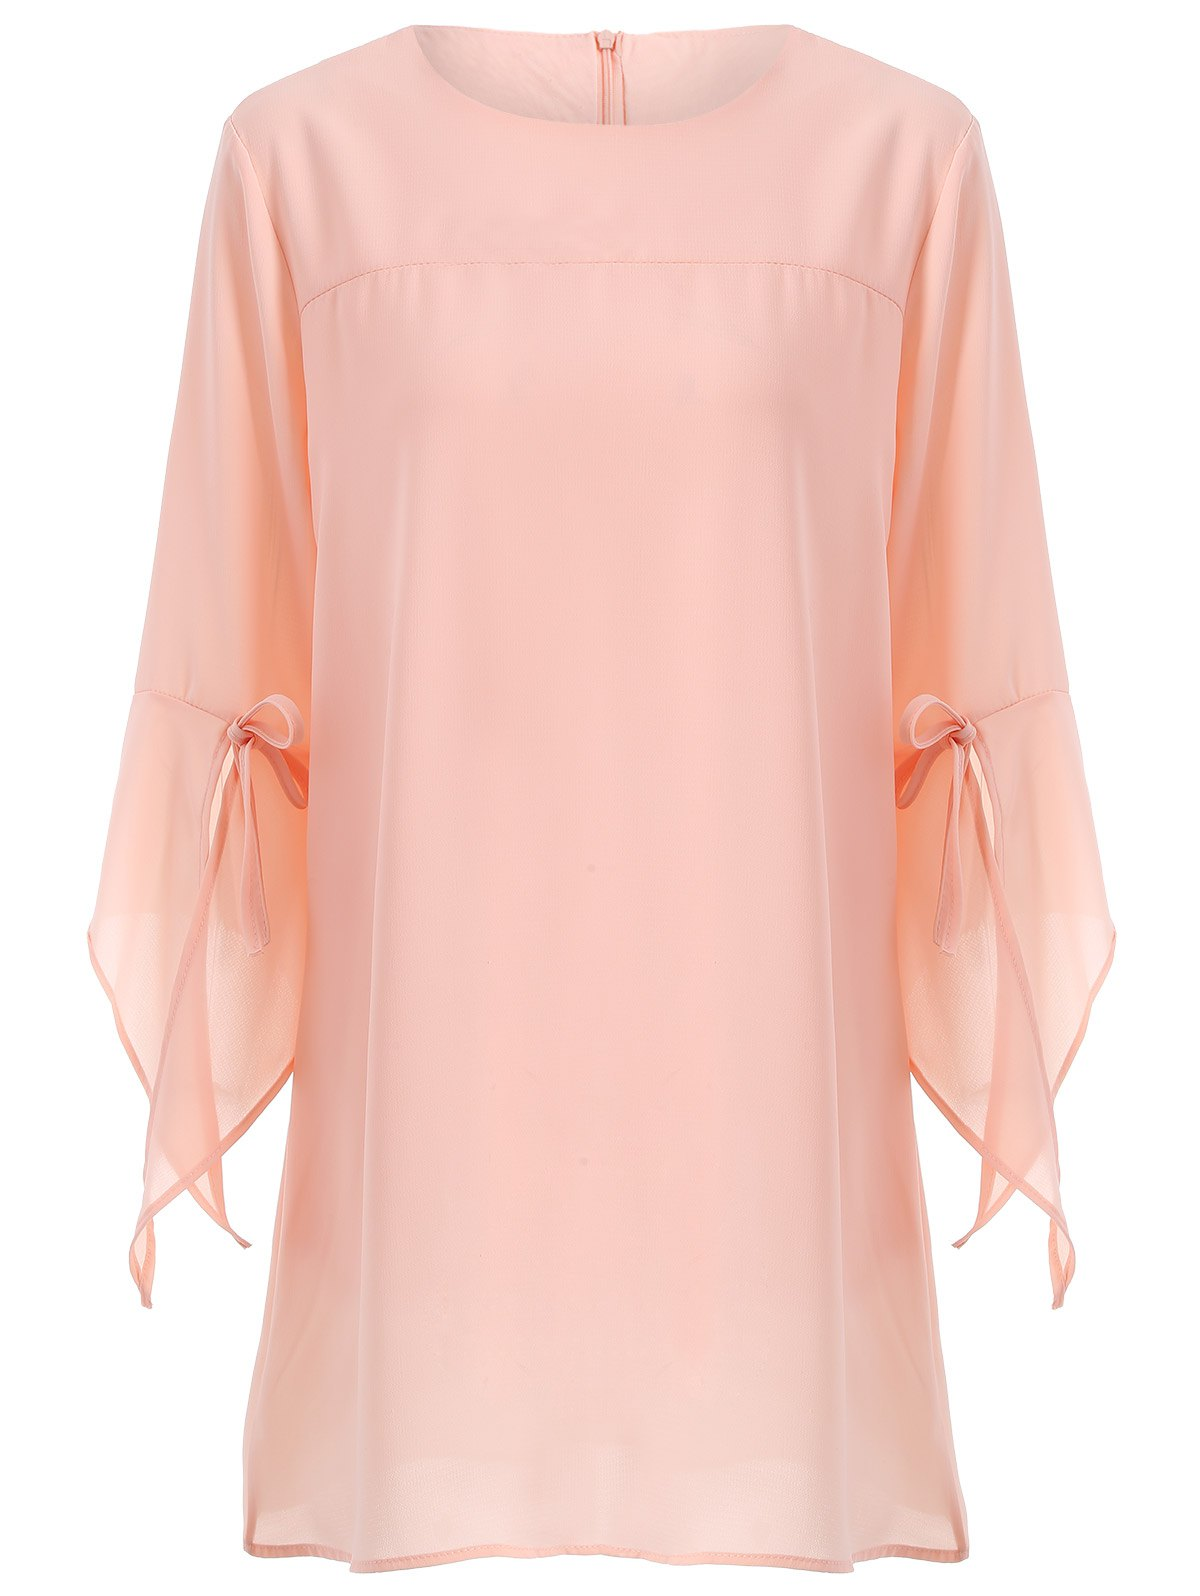 Plus Size Flare Sleeve Bowknot Mini Dress - PINK XL